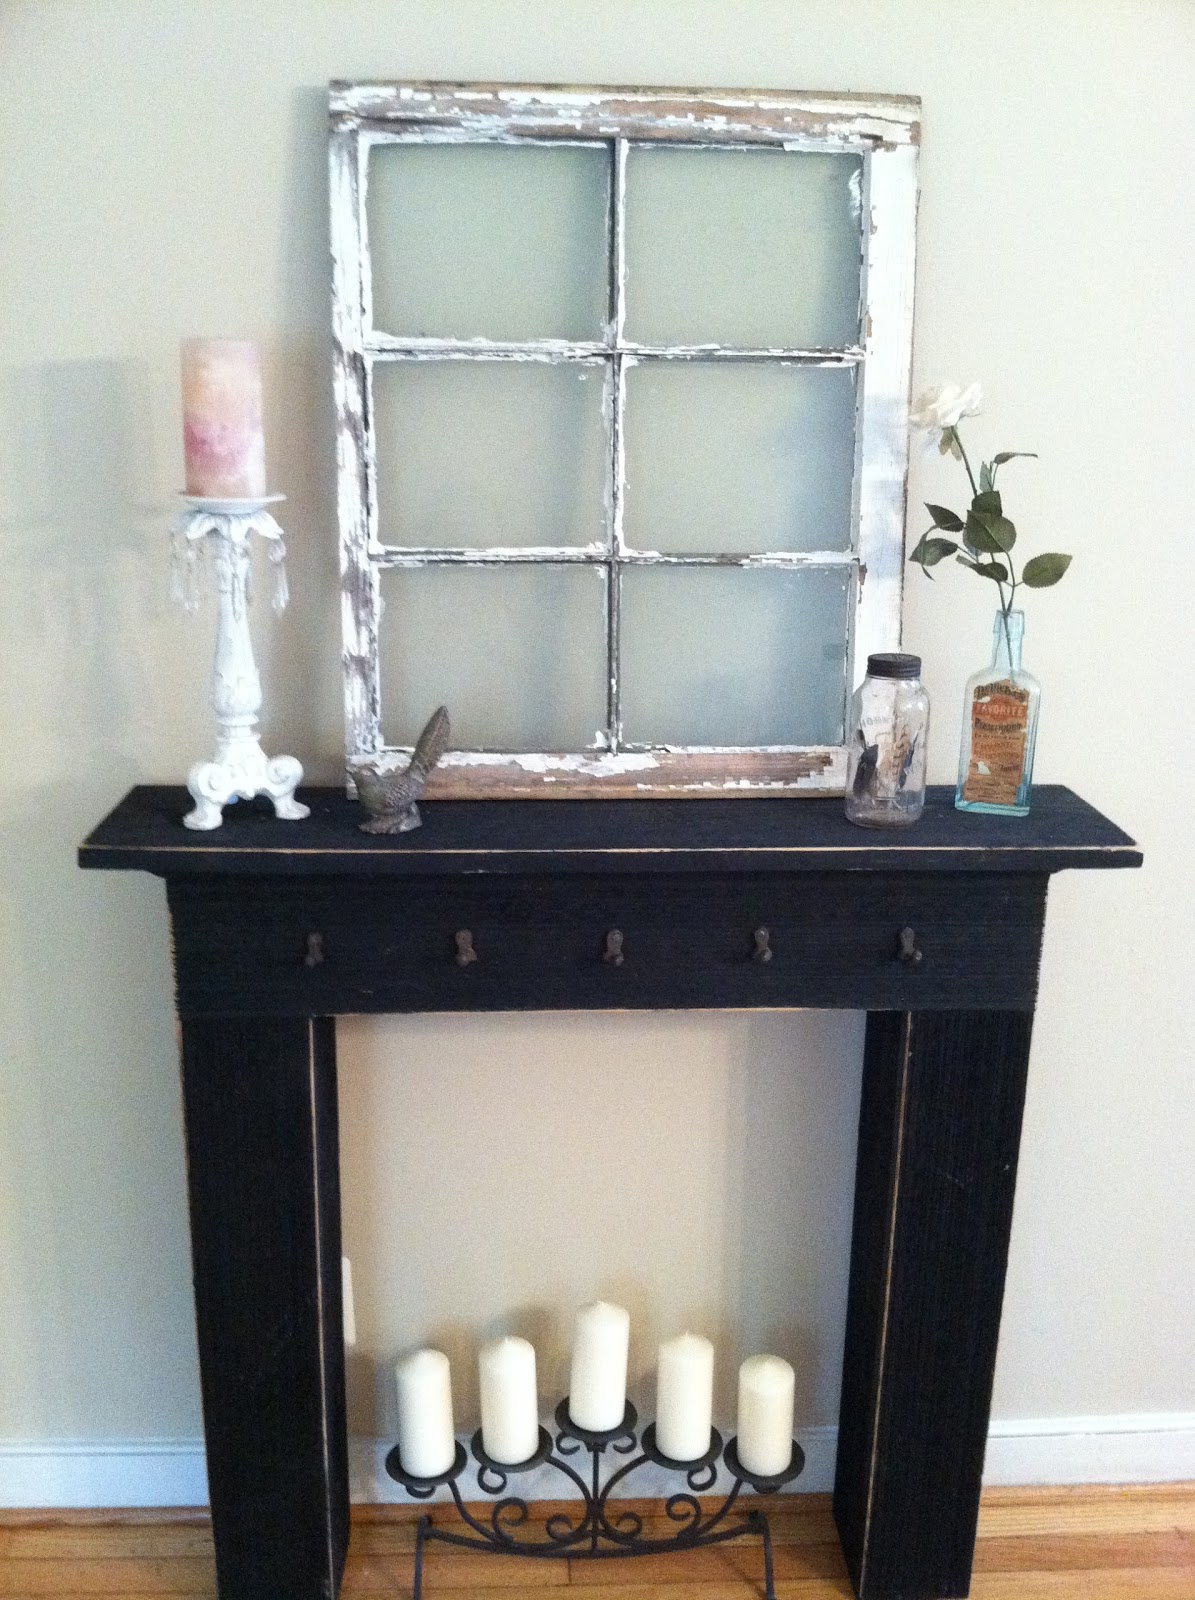 Vintage Afterthoughts A Few Of My Favorite Things: fireplace ideas no fire